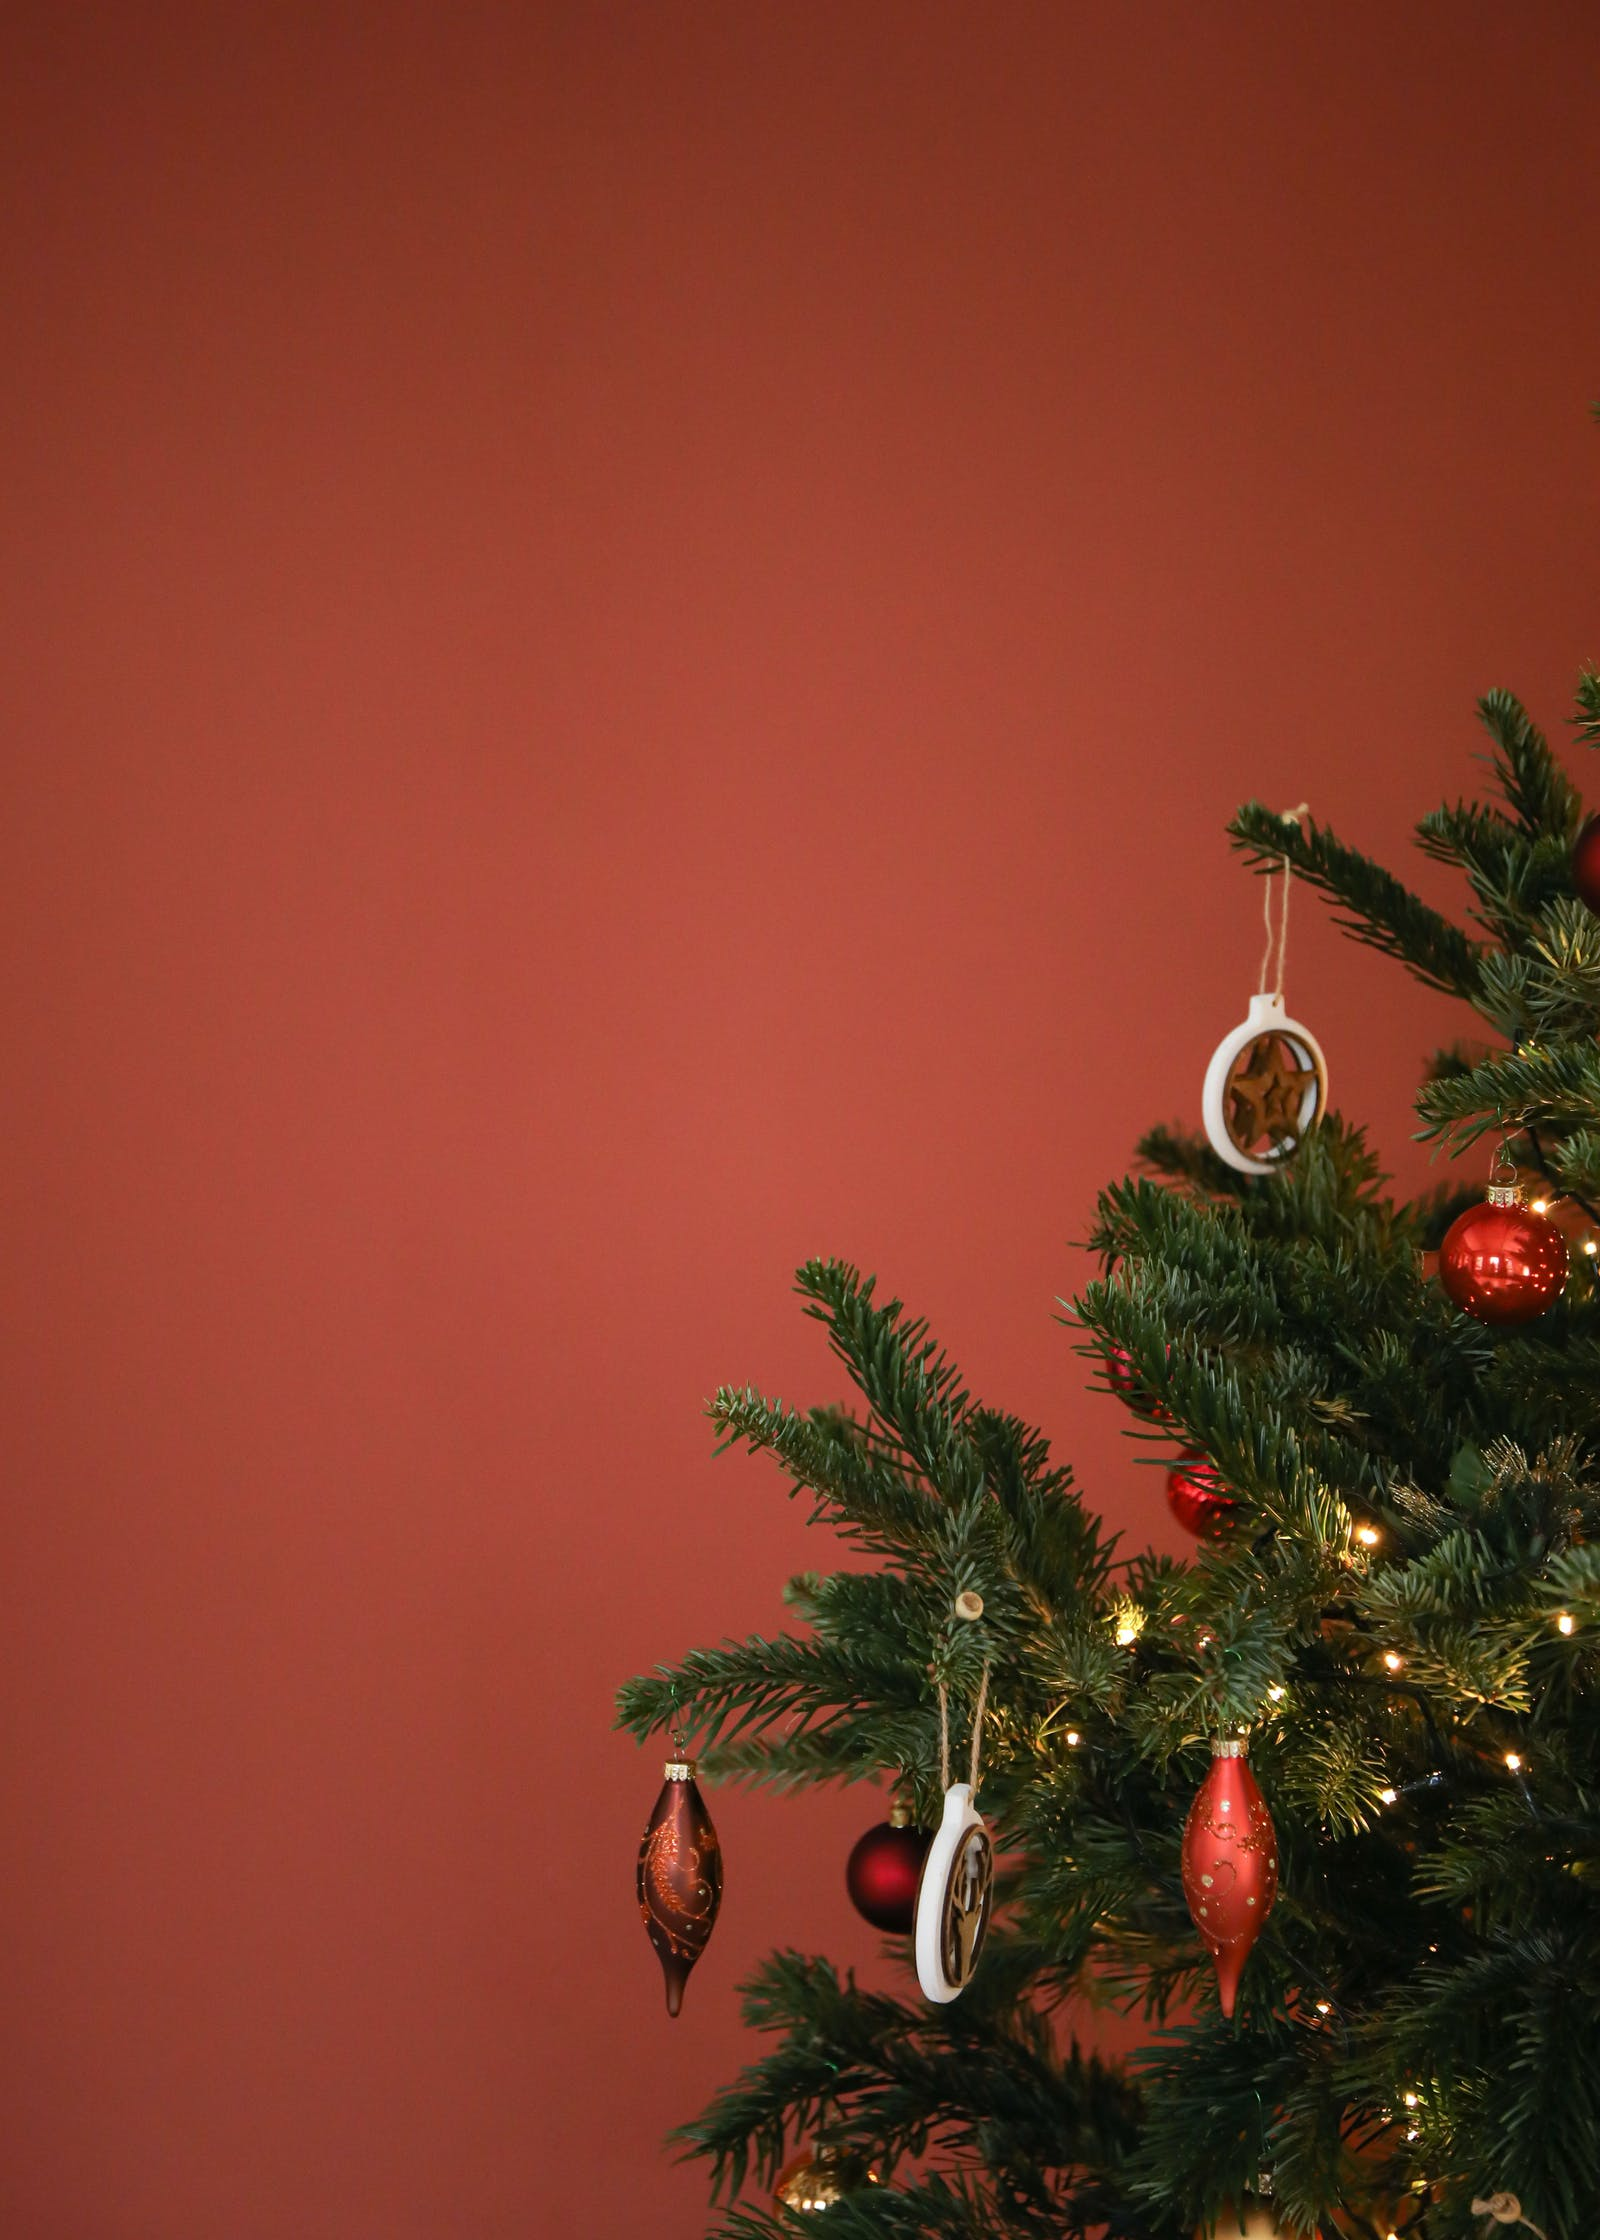 Christmas tree decorated in red baubles against Lick Red 01 wall